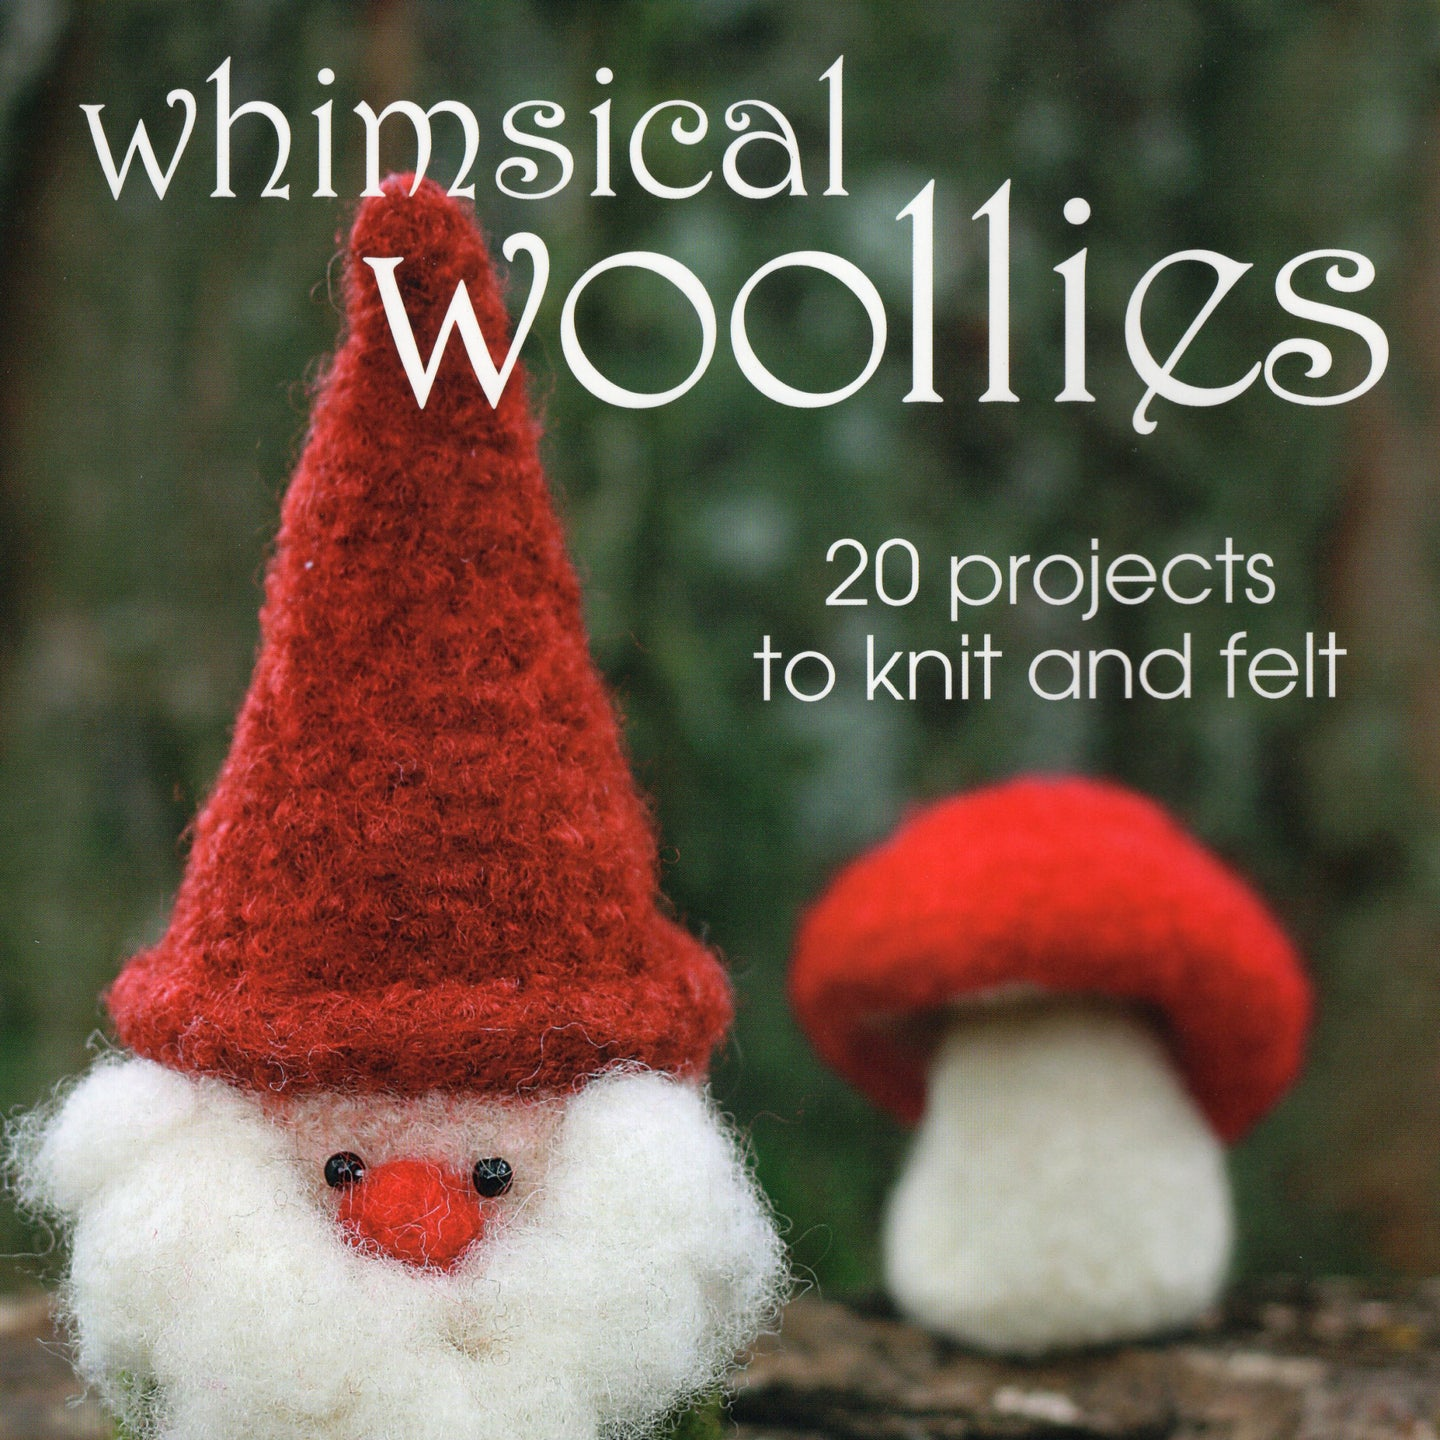 Whimsical Woollies, 20 projects to knit and felt